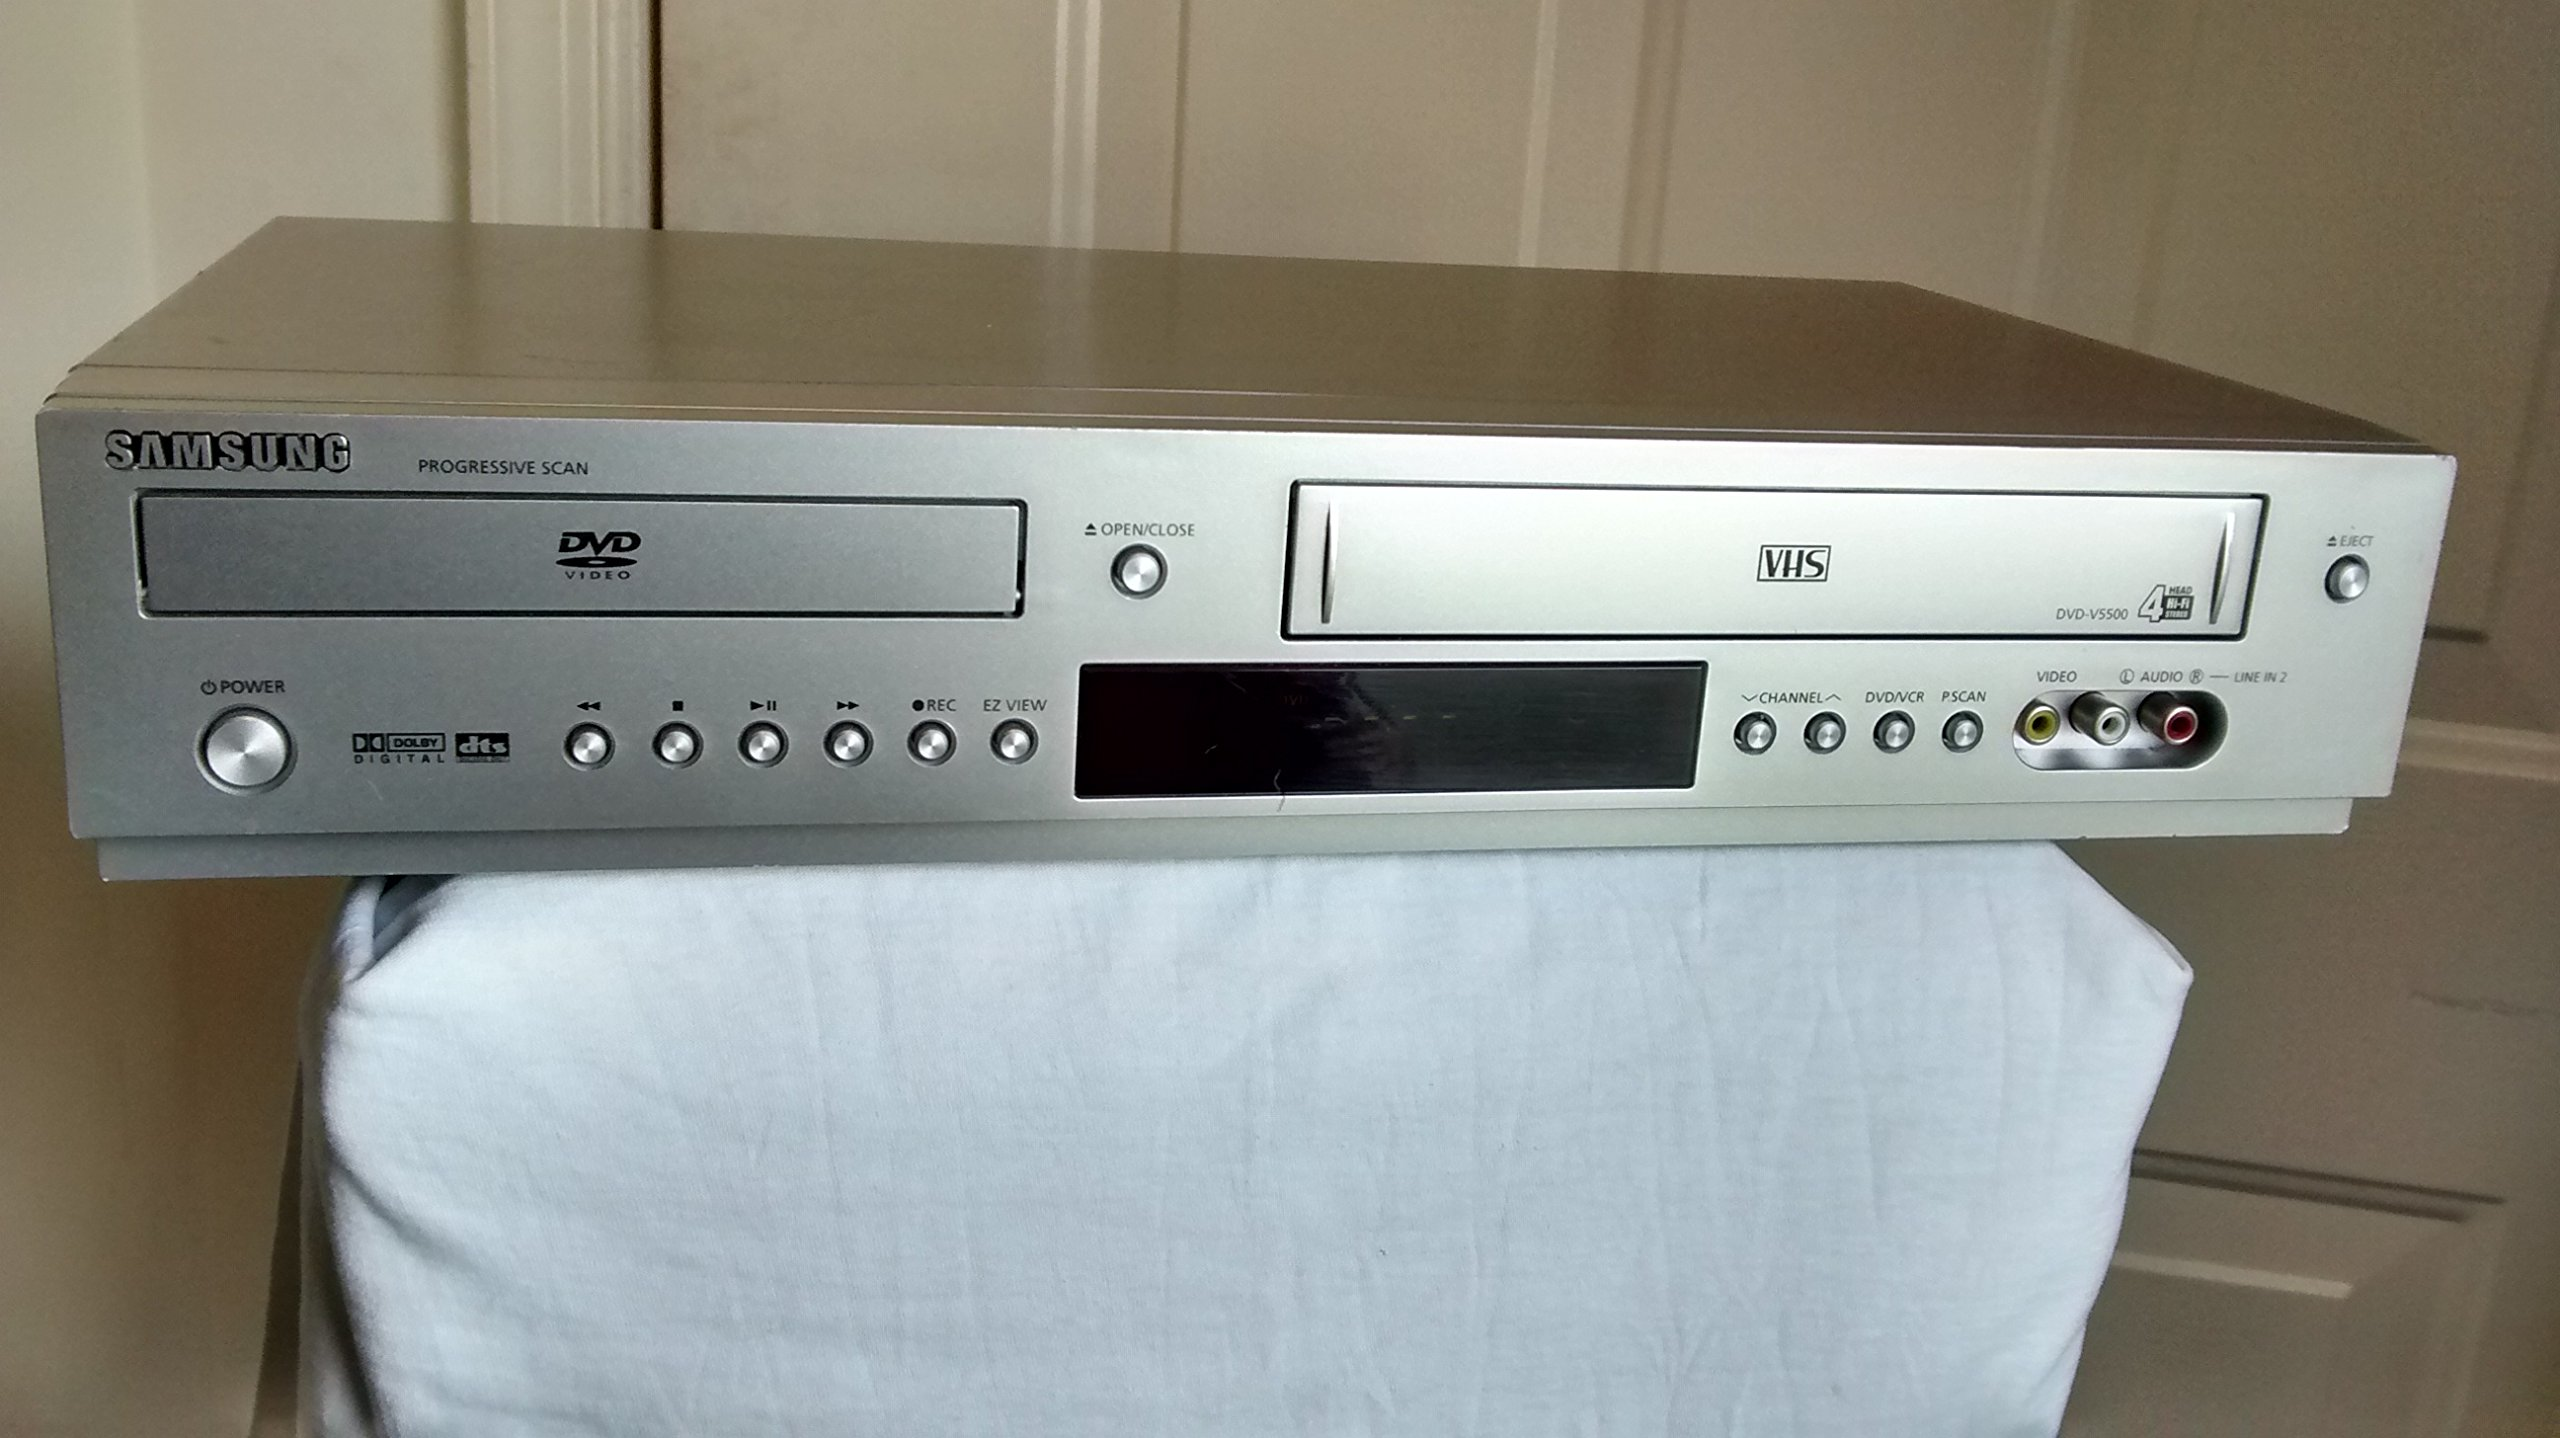 Samsung DVD-V5500 DVD/VCR Video Cassette Recorder Combo, VHS/DVD Dual Deck, 4-Head Hi-Fi Stereo VHS Player, Player w/ Dolby Digital, DTS Surround, Progressive Scan. Works Amazing!